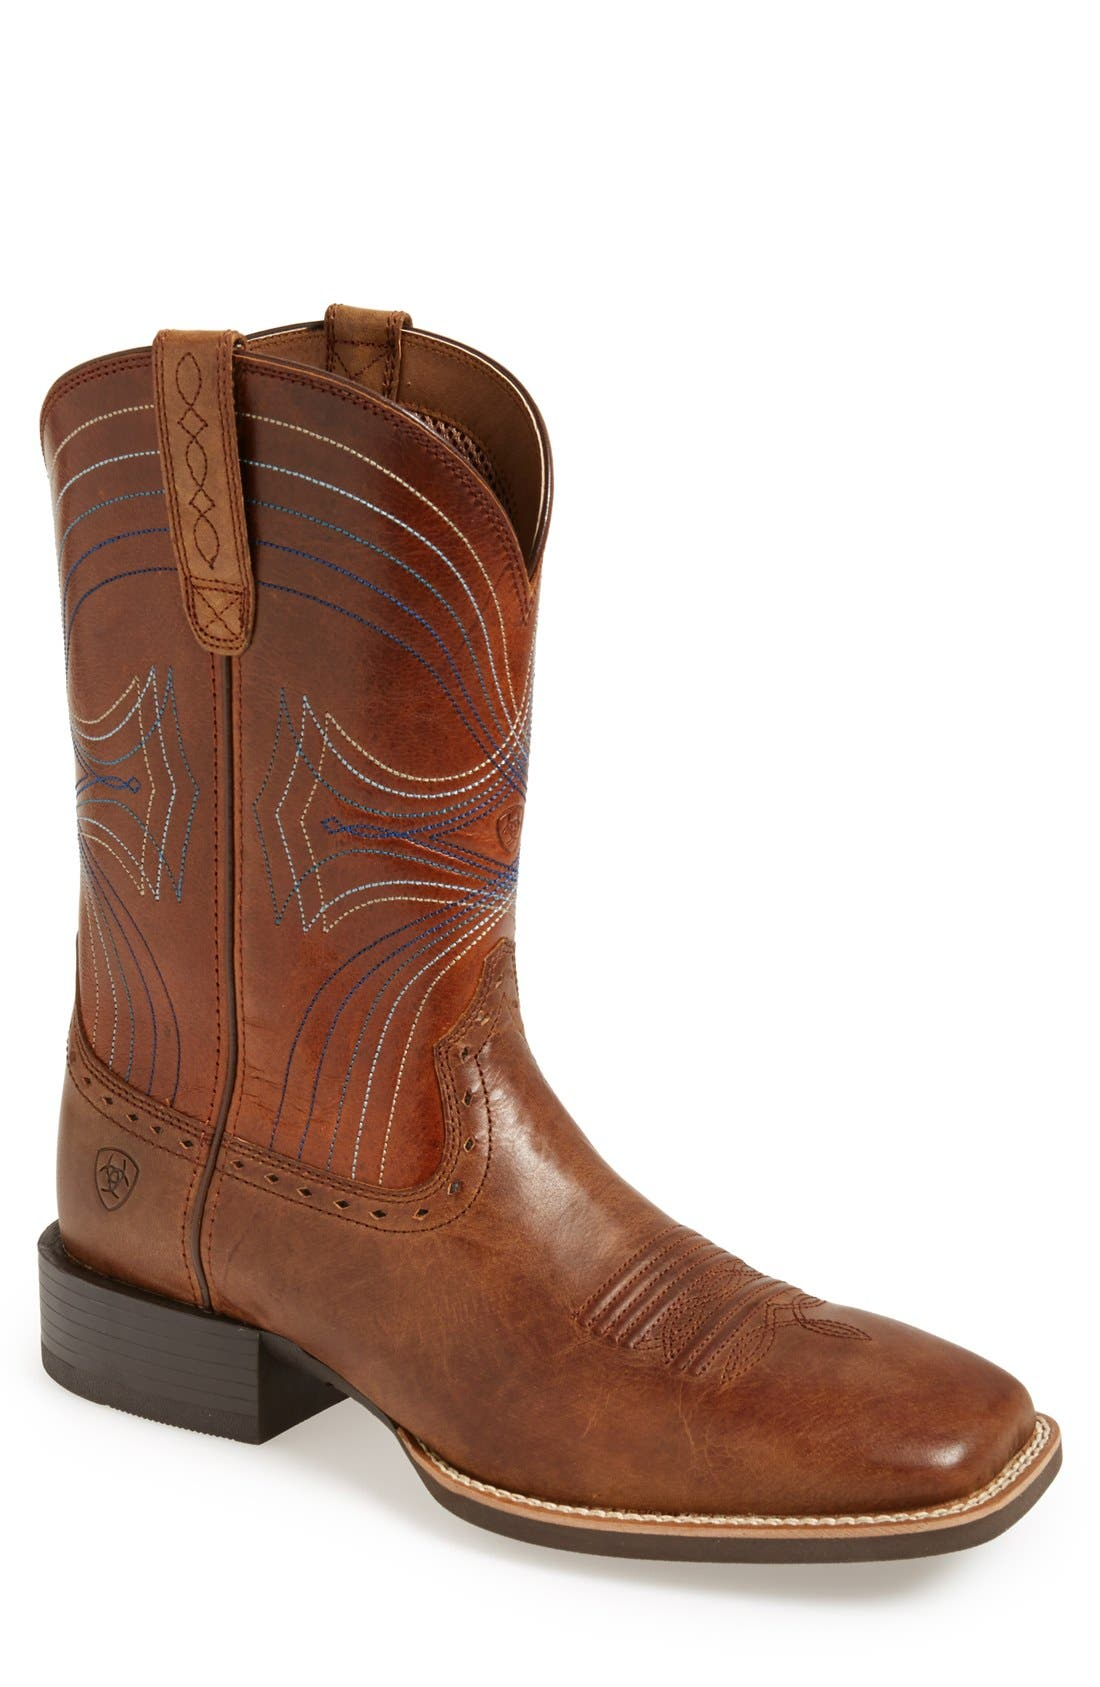 ARIAT 'Sport' Leather Cowboy Boot, Main, color, BROWN